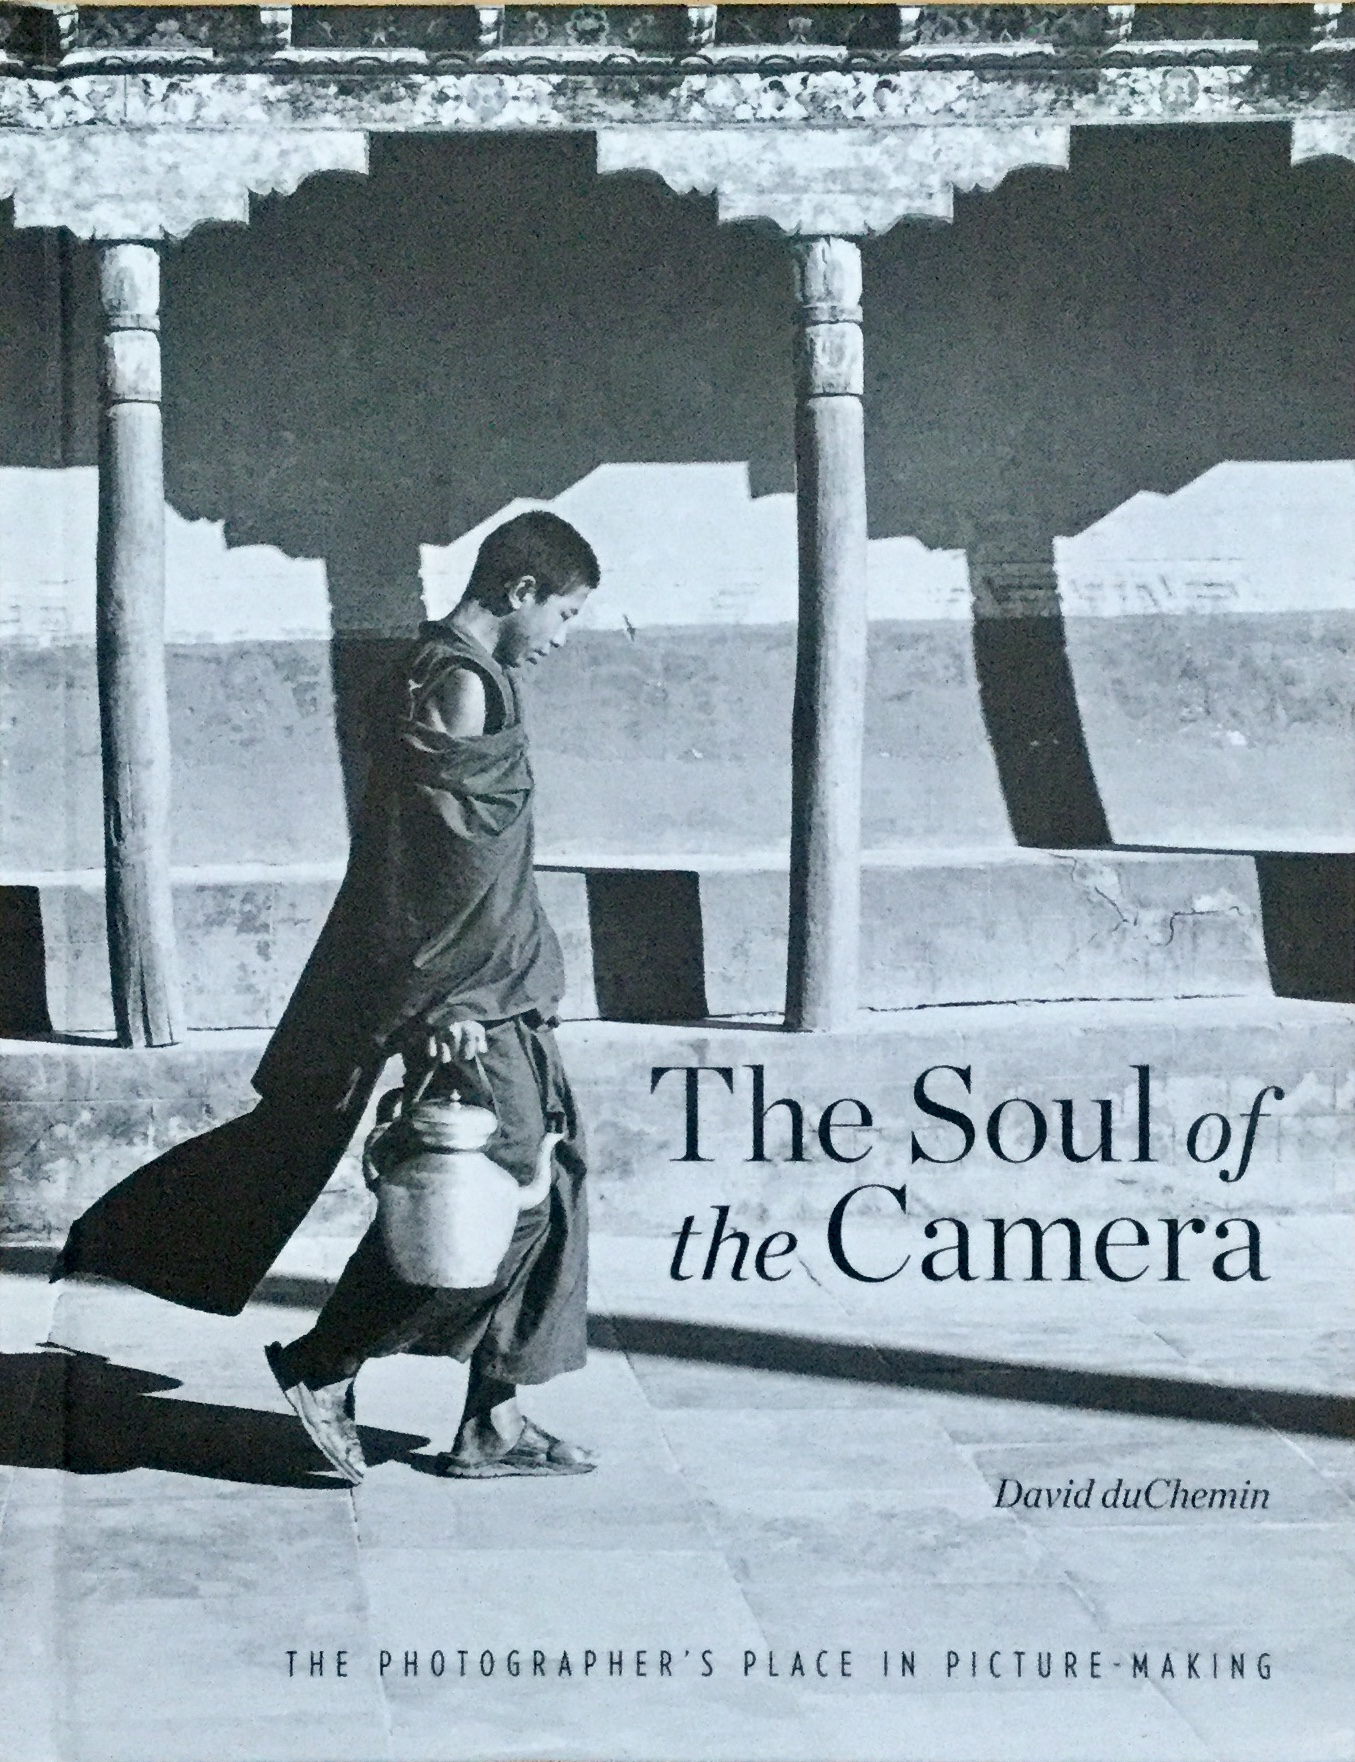 Soul of the camera de David duChemin